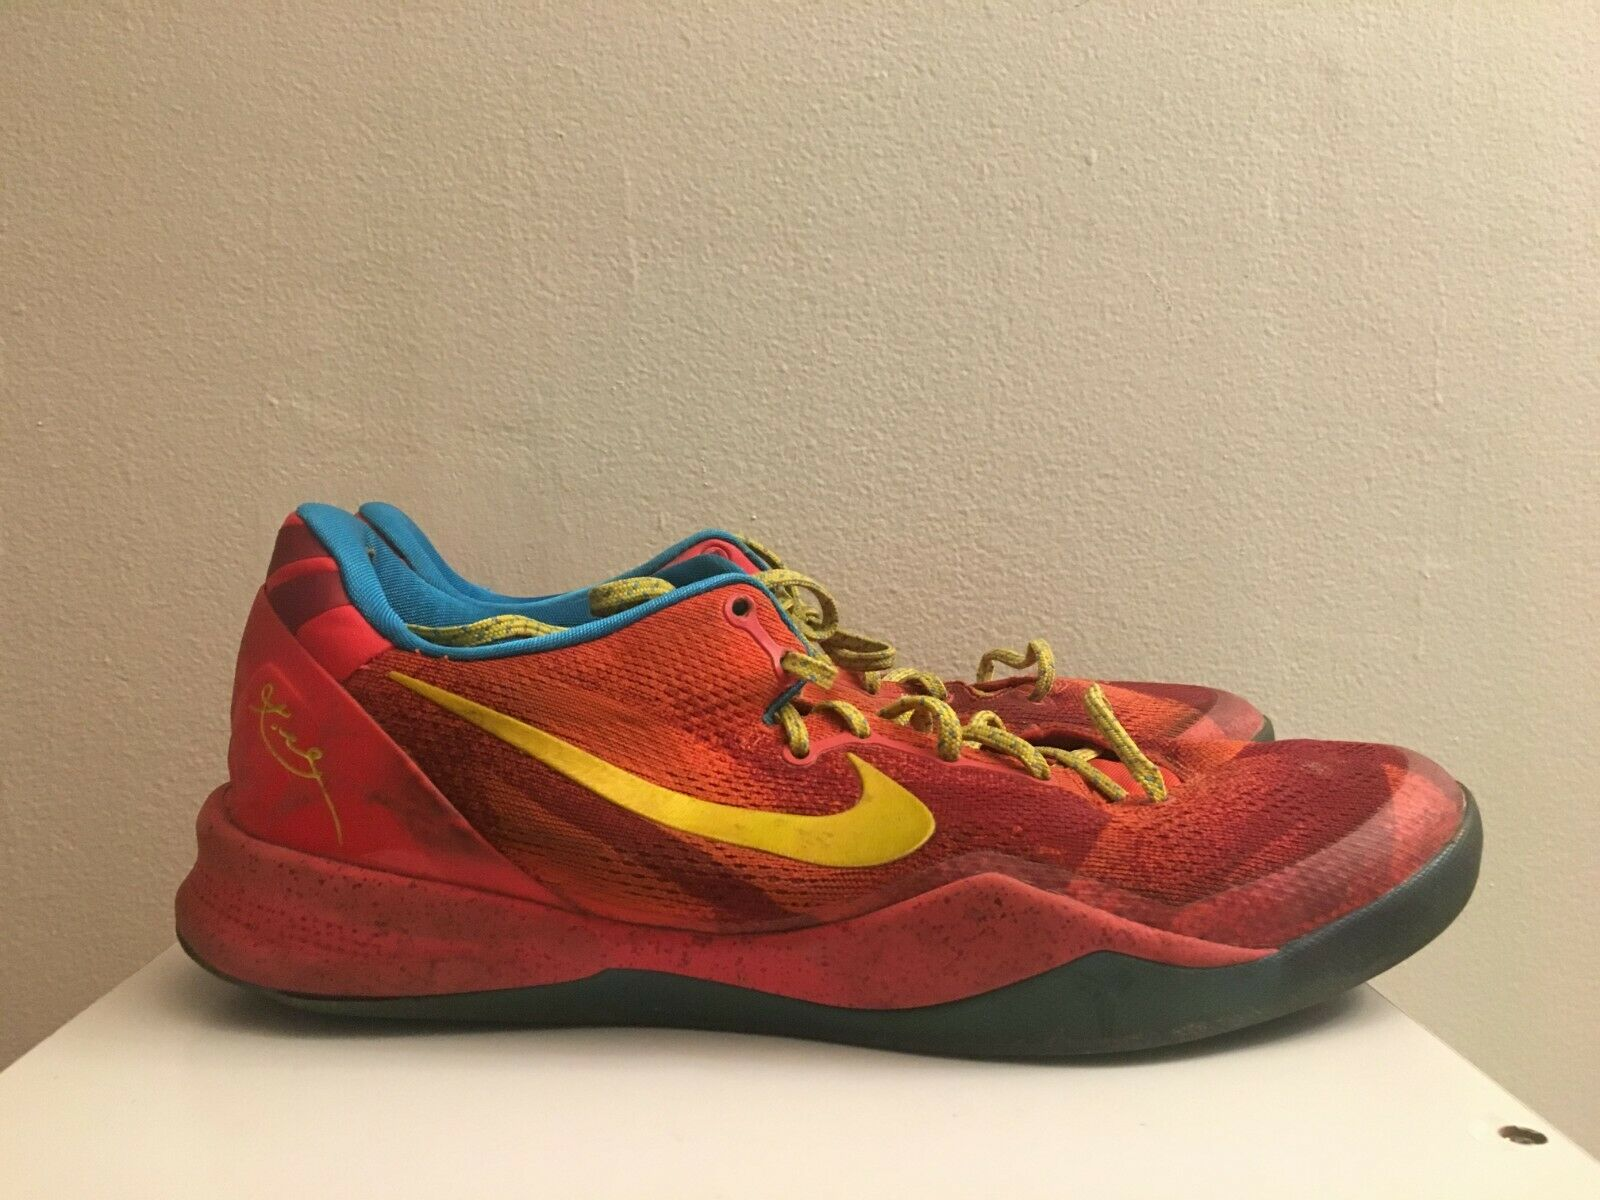 2014 NIKE KOBE VIII 8 SYSTEM YOTH YEAR OF THE HORSE RED CITRON blueE YELLOW 13